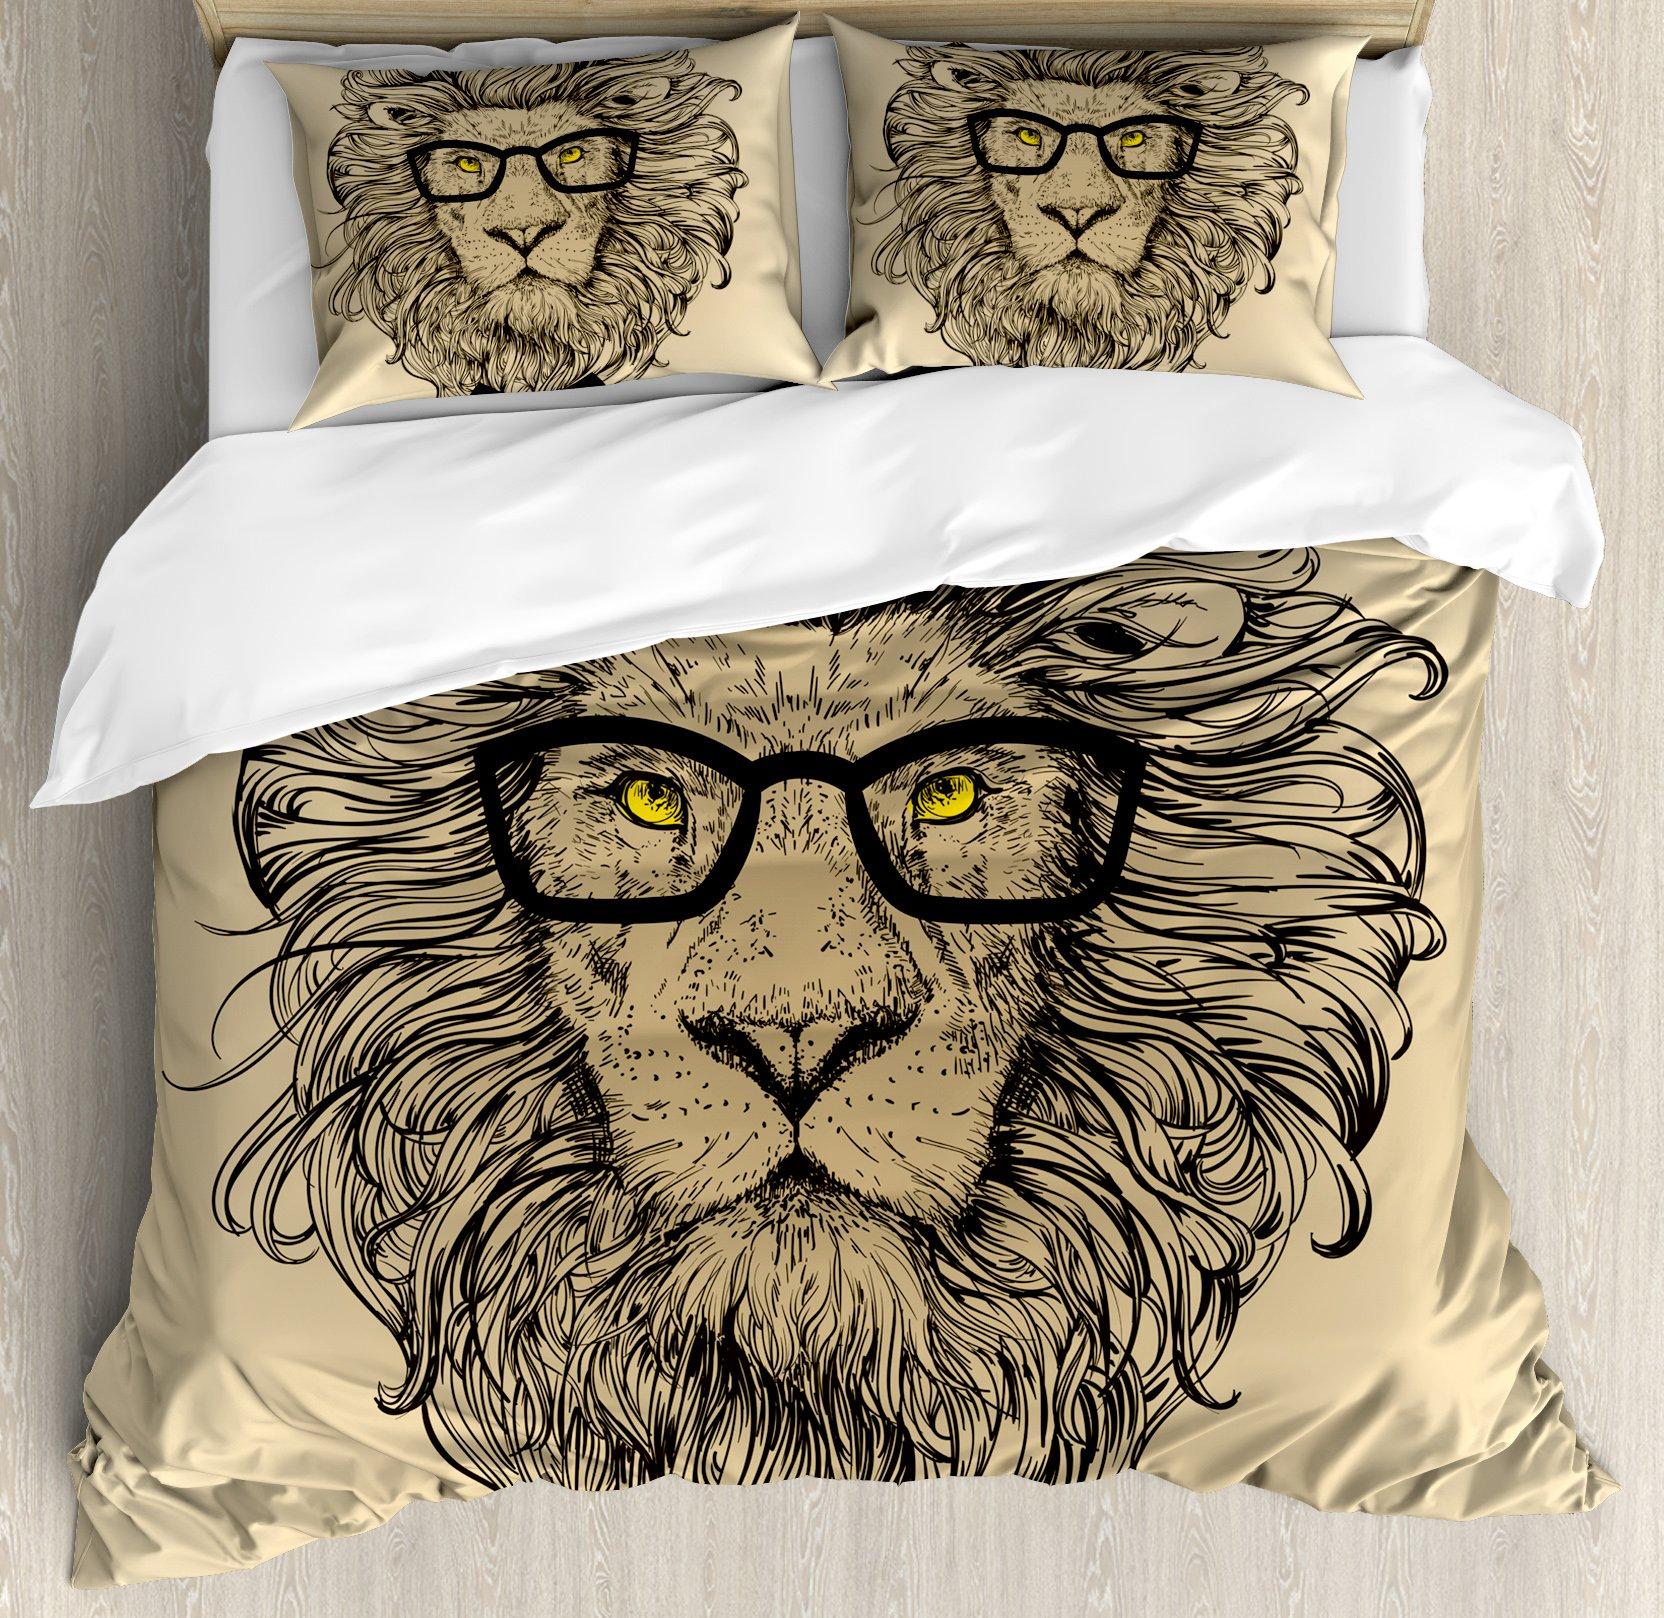 Indie Duvet Cover Set Queen Size by Ambesonne, Lion Character Portrait with Glasses and Bowtie Hipster Smart Cool Dandy, Decorative 3 Piece Bedding Set with 2 Pillow Shams, Sand Brown Black Yellow